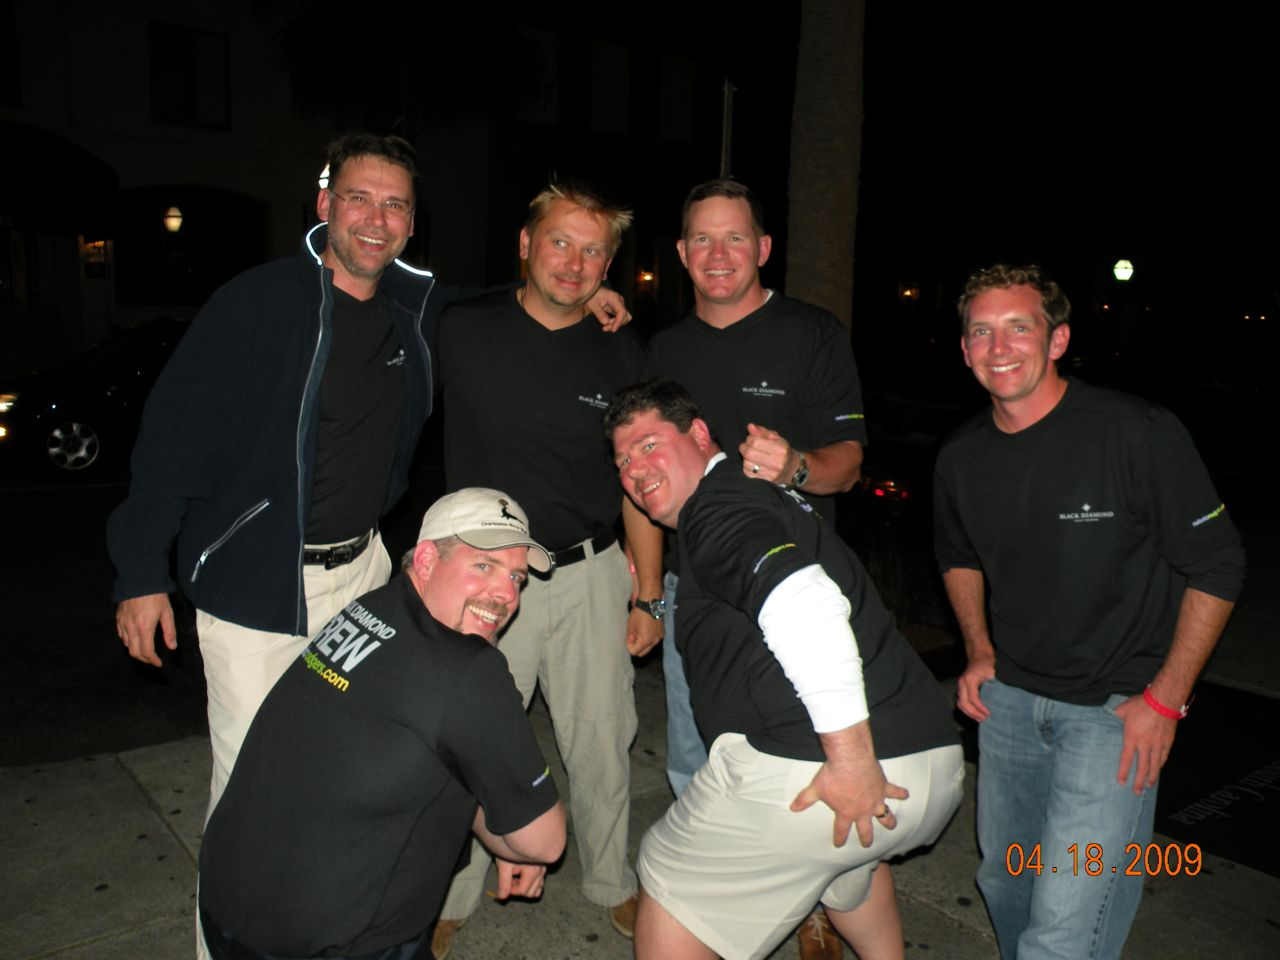 Ivan, Ed, Dubie, Derek, Craig and Chris. - (c) Copyright 2009